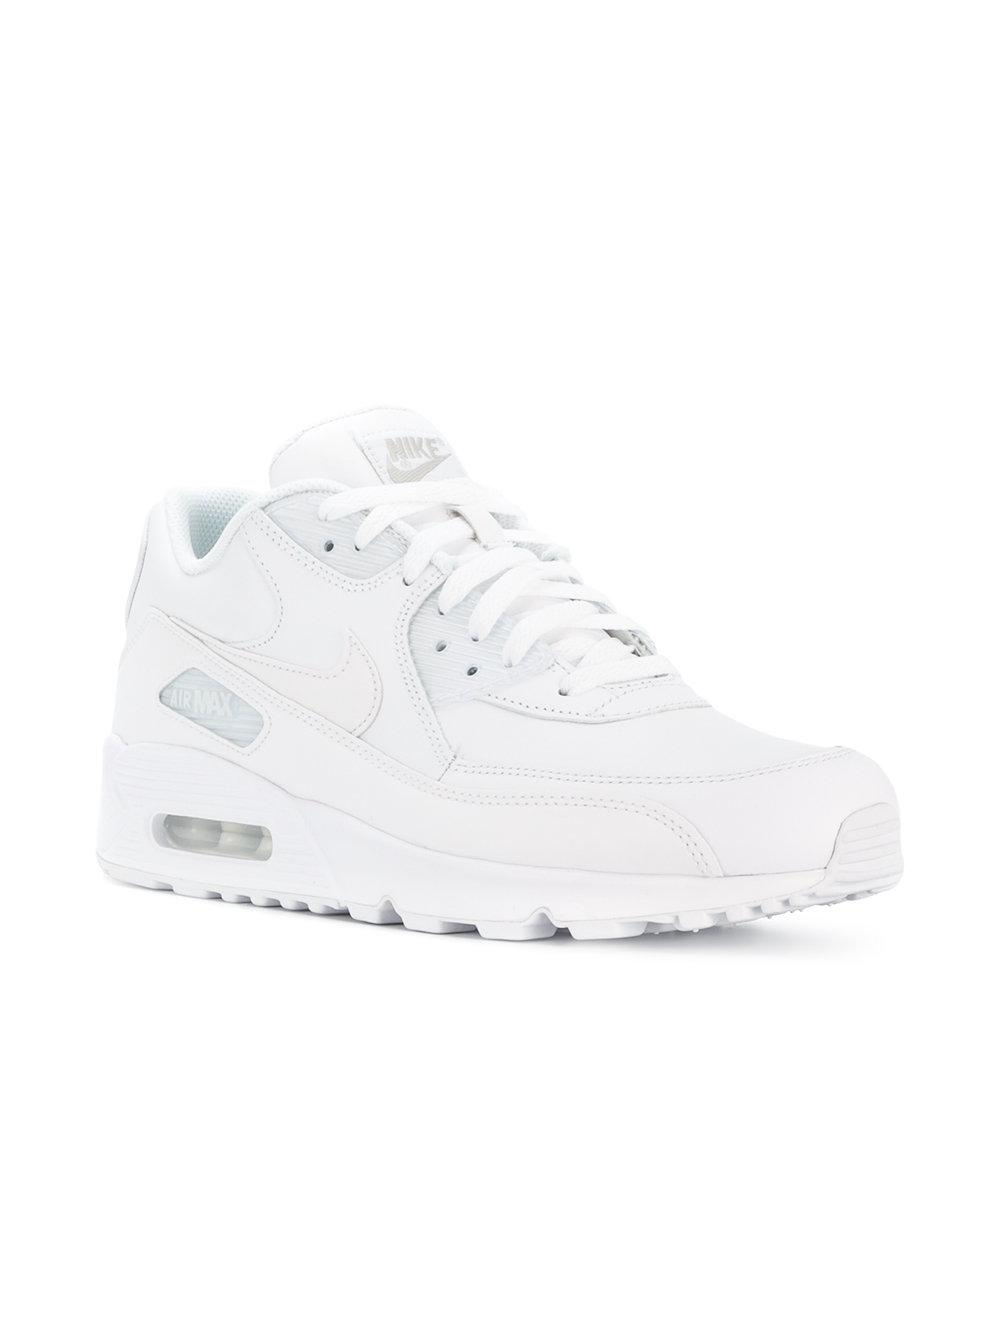 Nike Leather Air Max 90 Sneakers in White